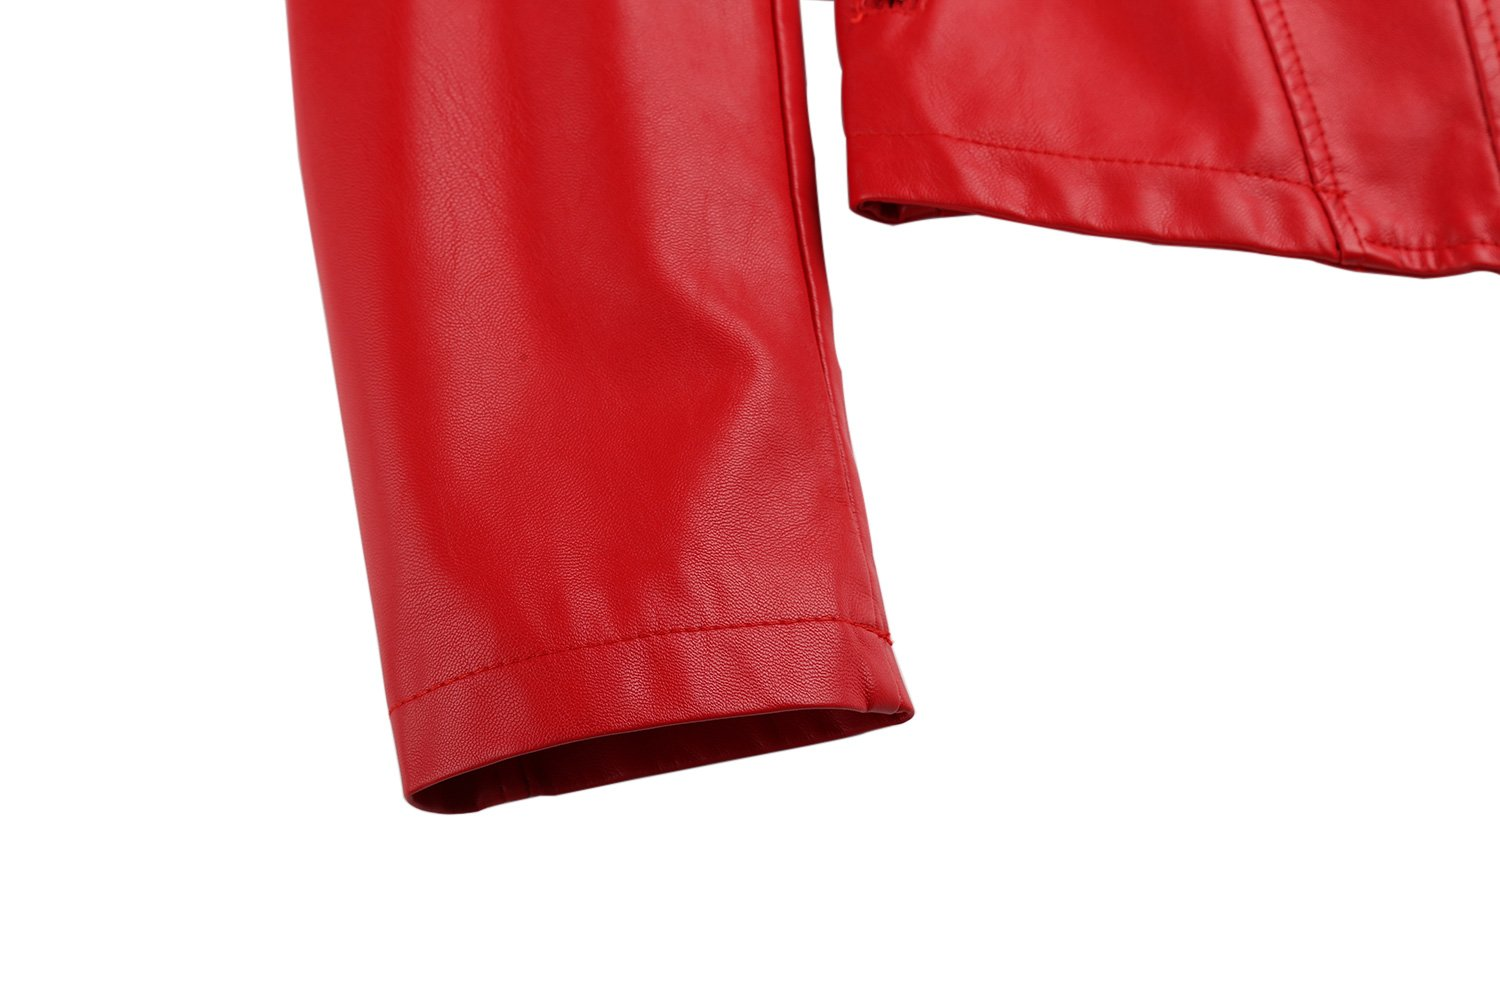 Tanming Women's Slim Zipper Color Faux Leather Jacket Red (Large, Red) by Tanming (Image #5)